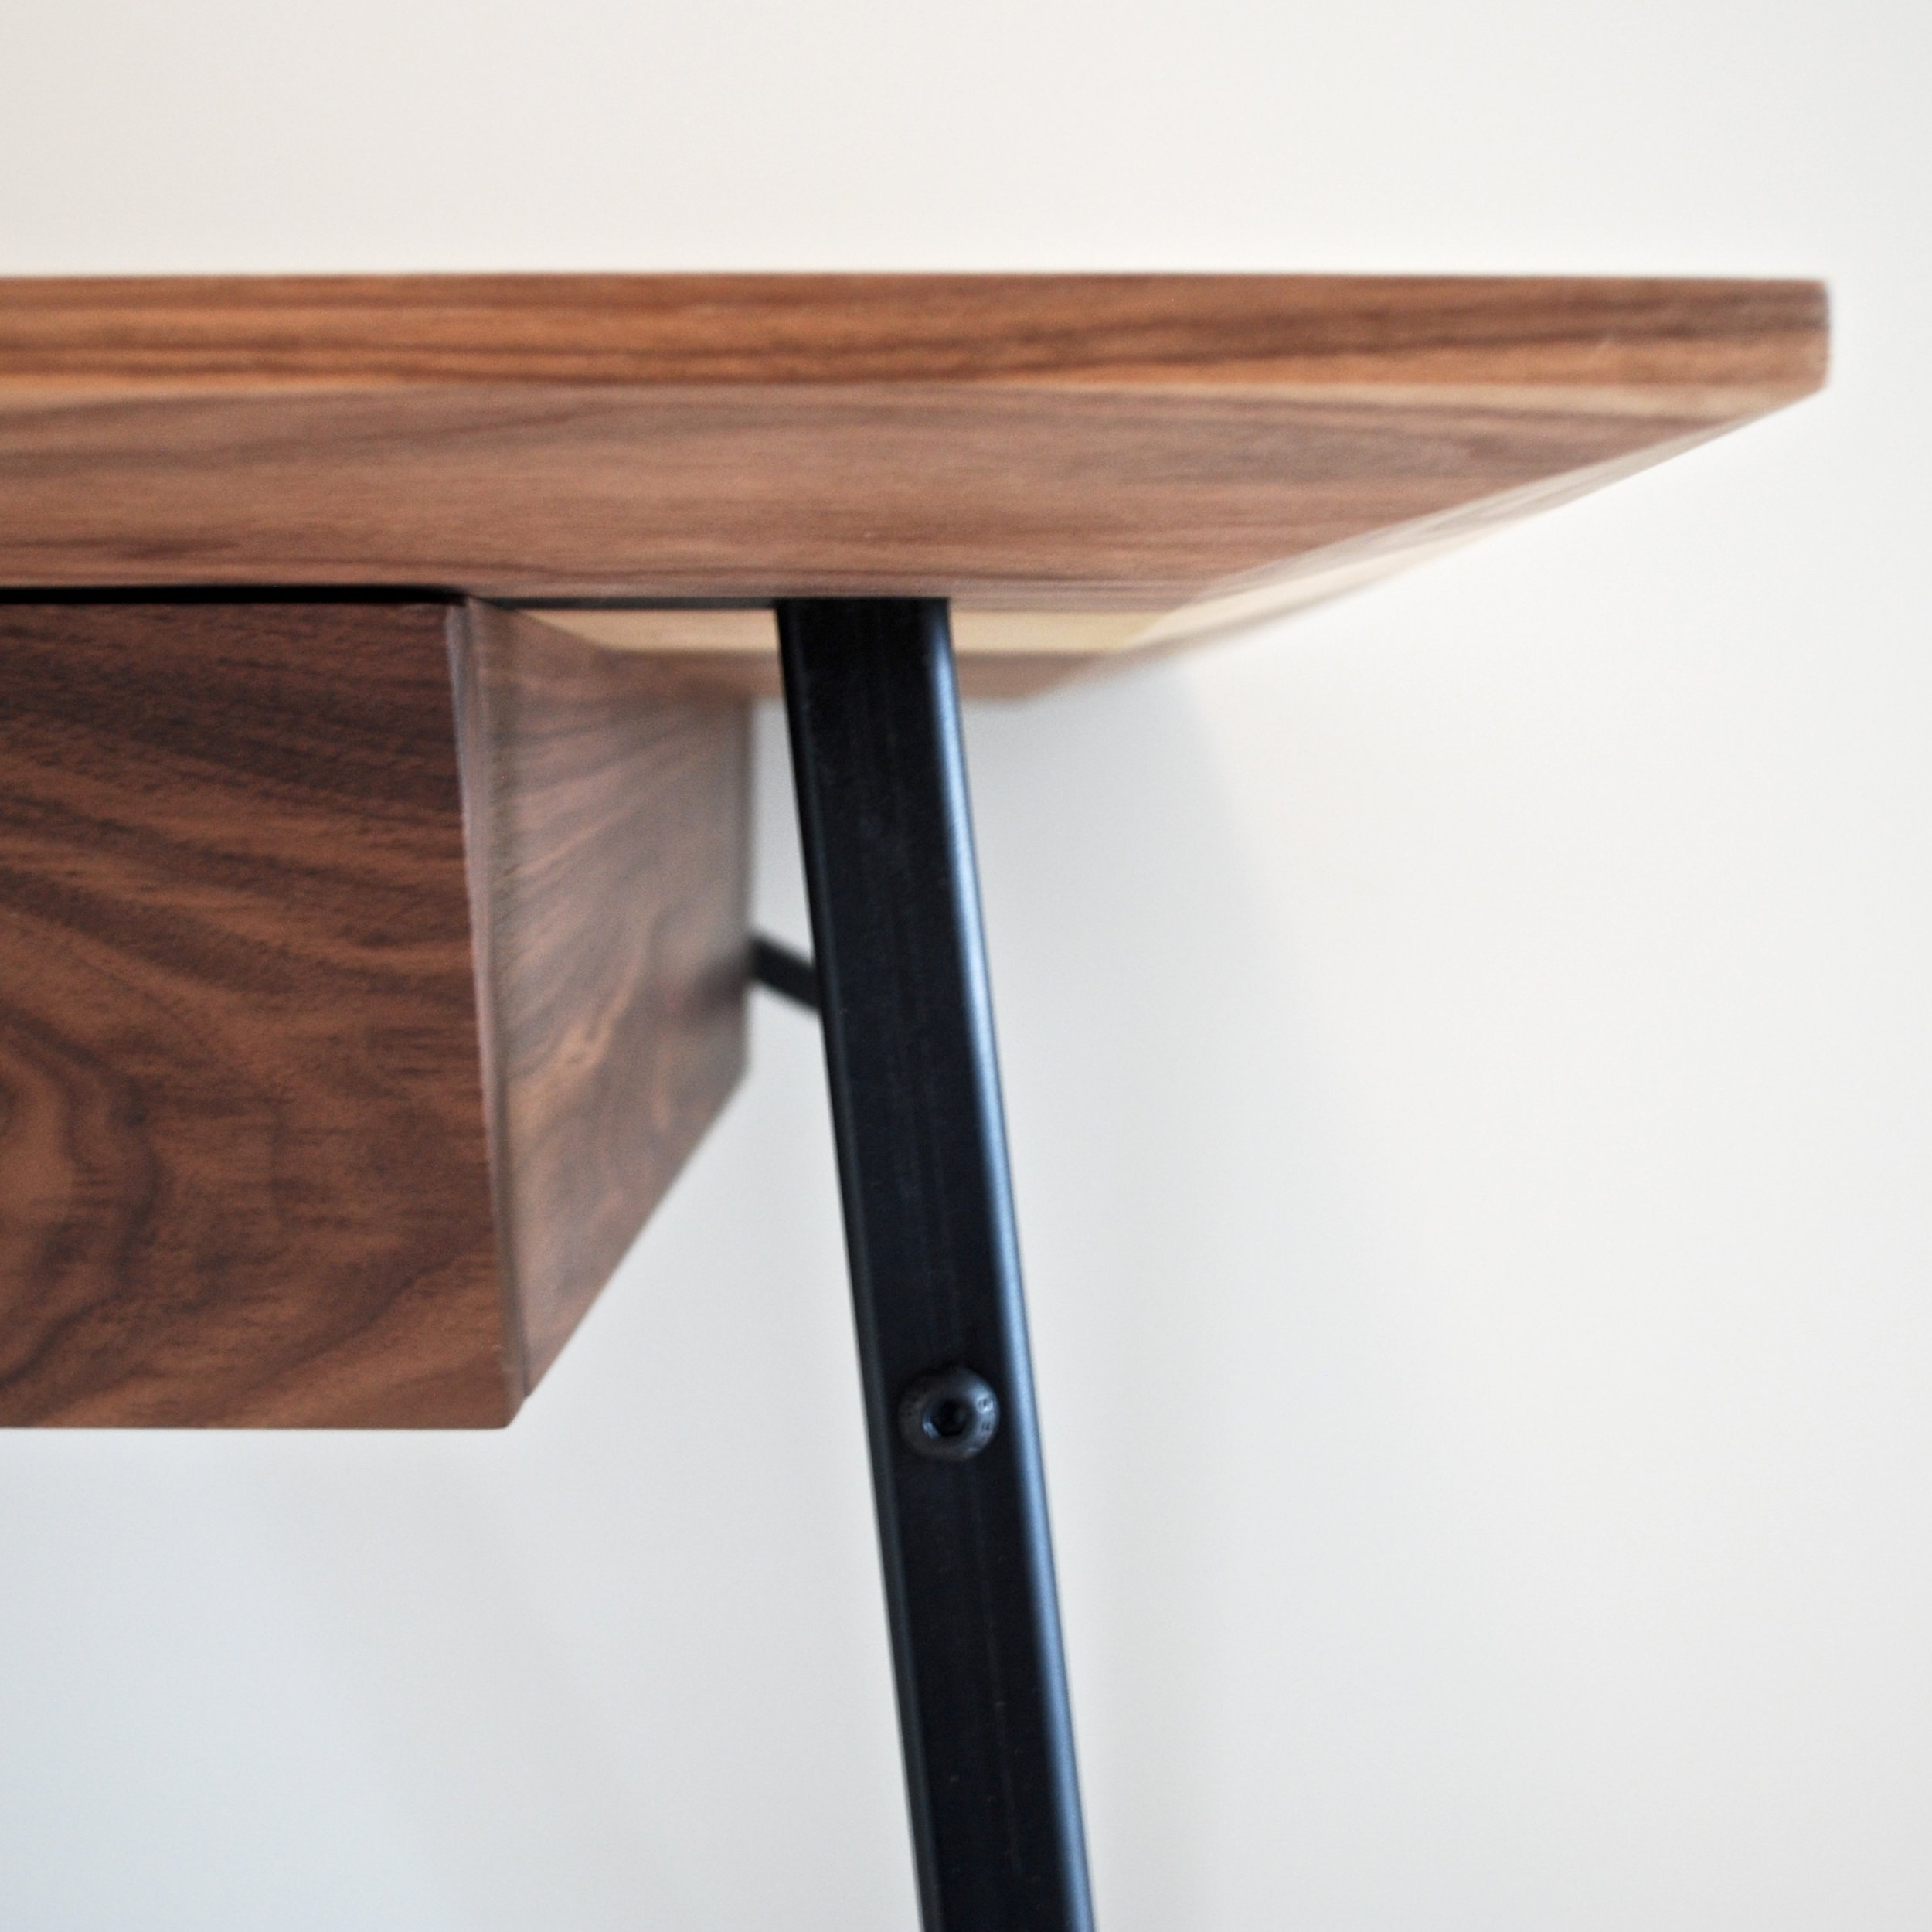 Bespoke walnut and steel desk